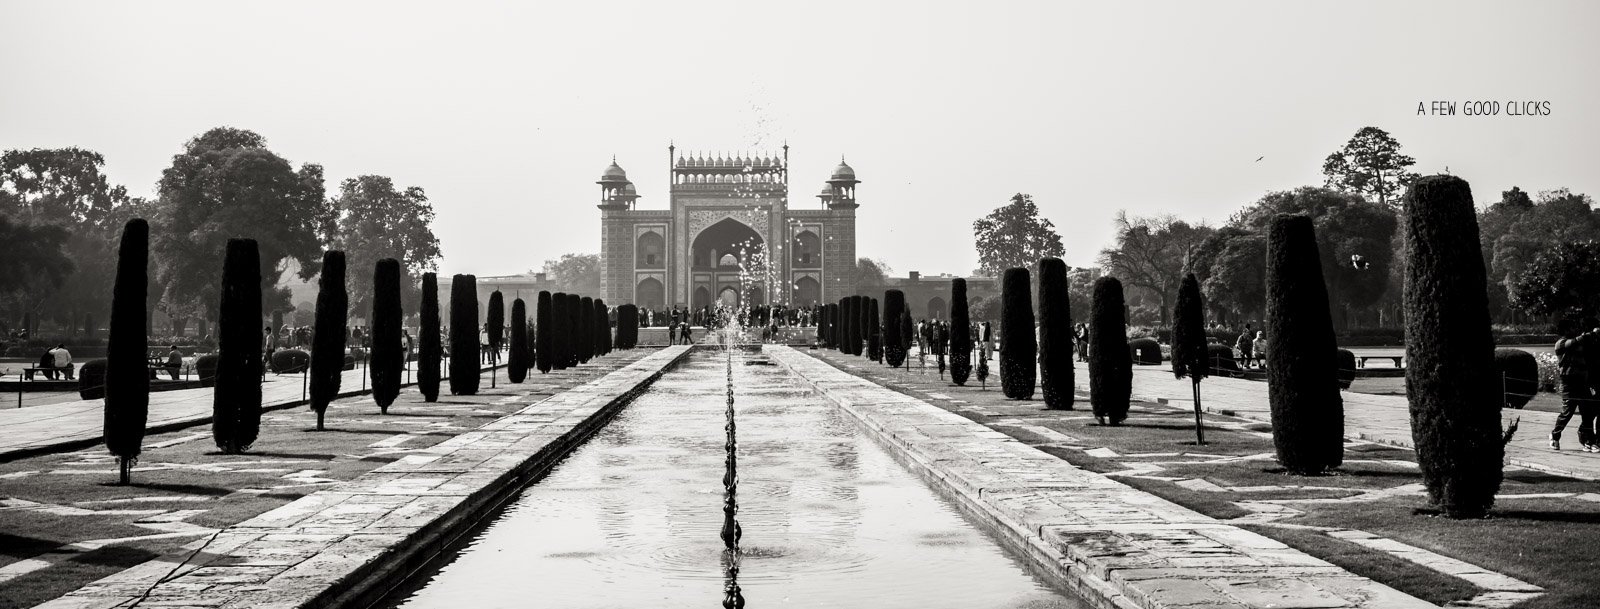 In this image, I am standing right in front of Taj facing the main entrance and fountains